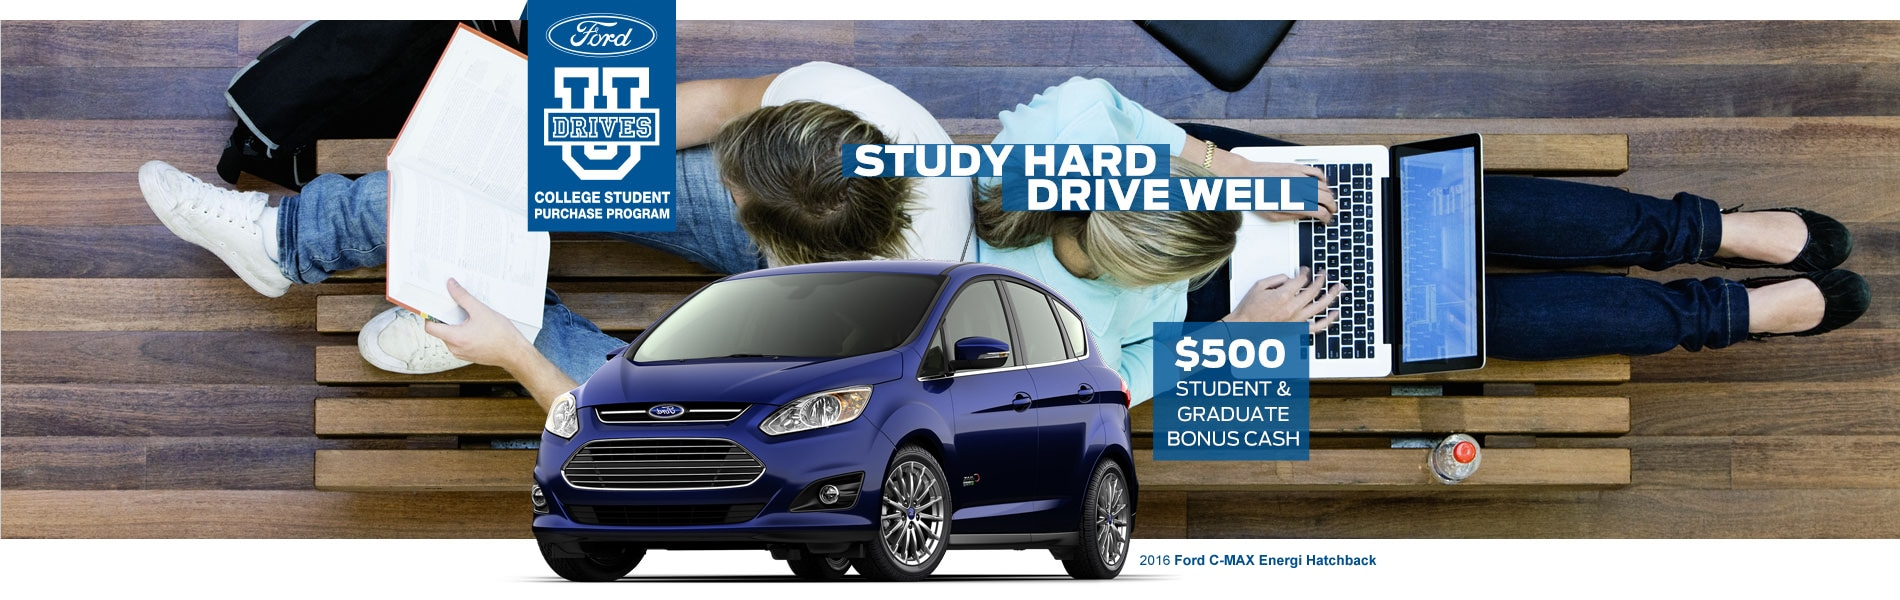 Student Savings - Used Cars For Sale, Truck & Car Deralerships ...